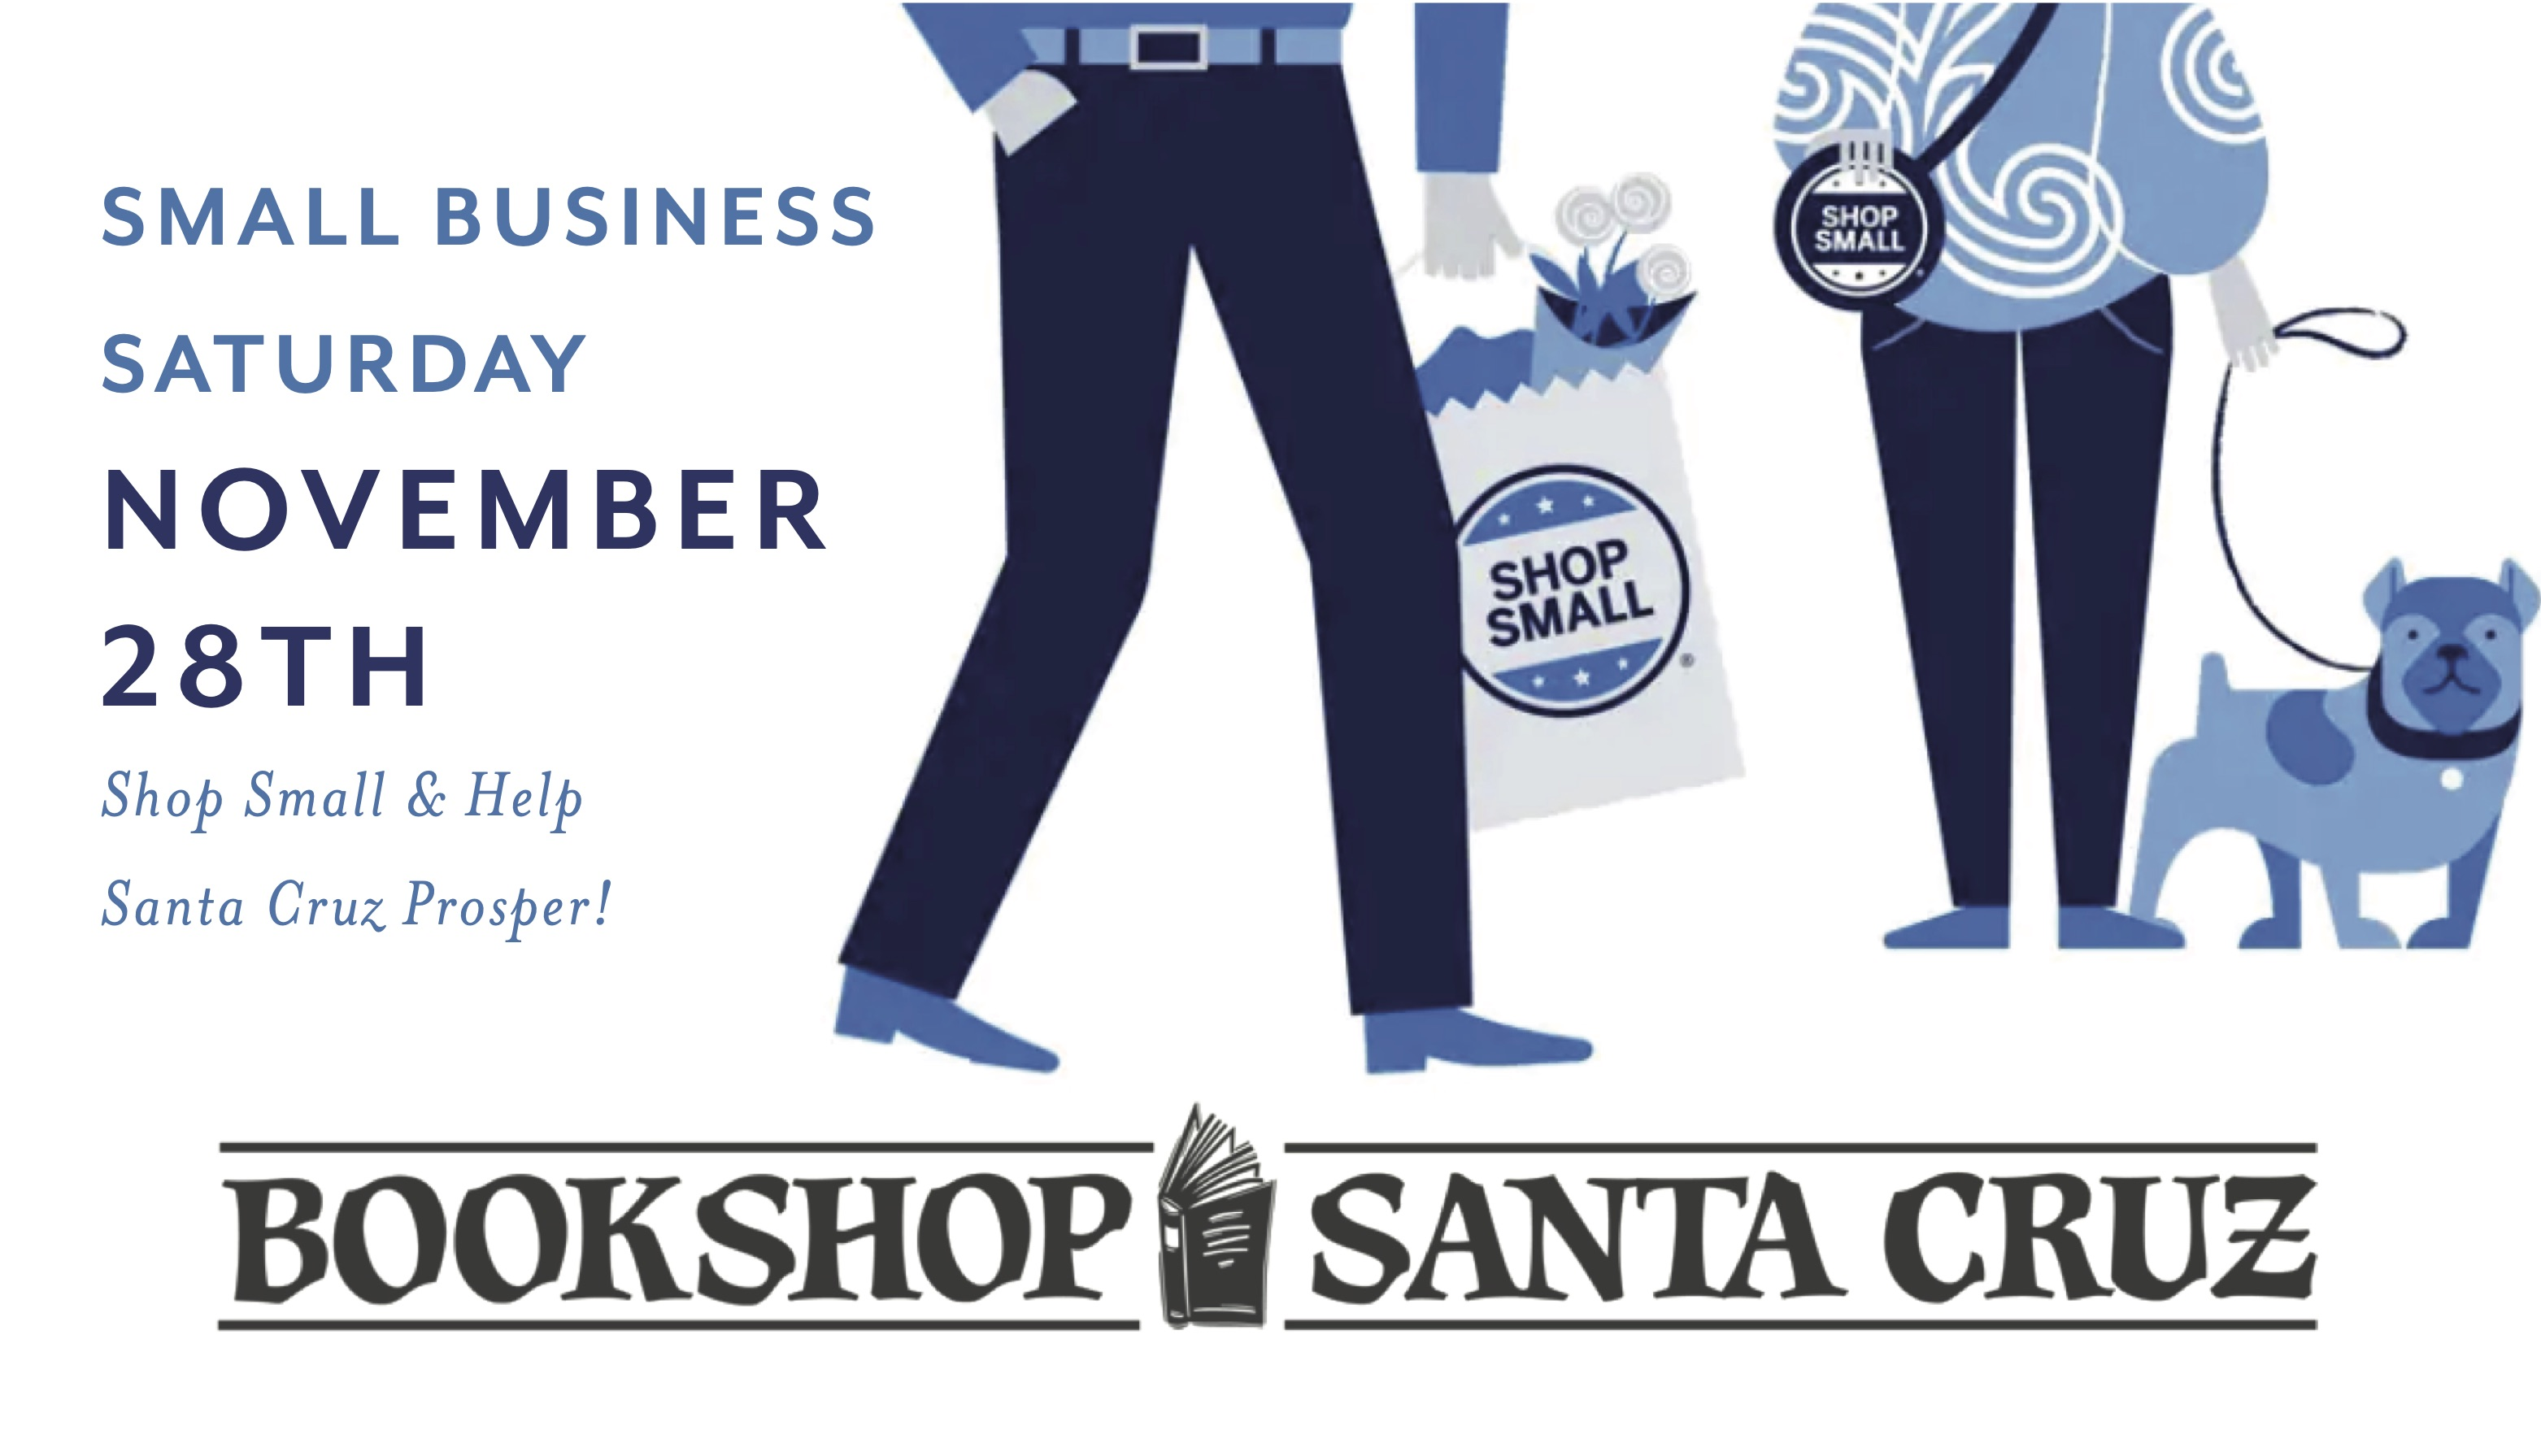 Small Business Saturday Bookshop Santa Cruz